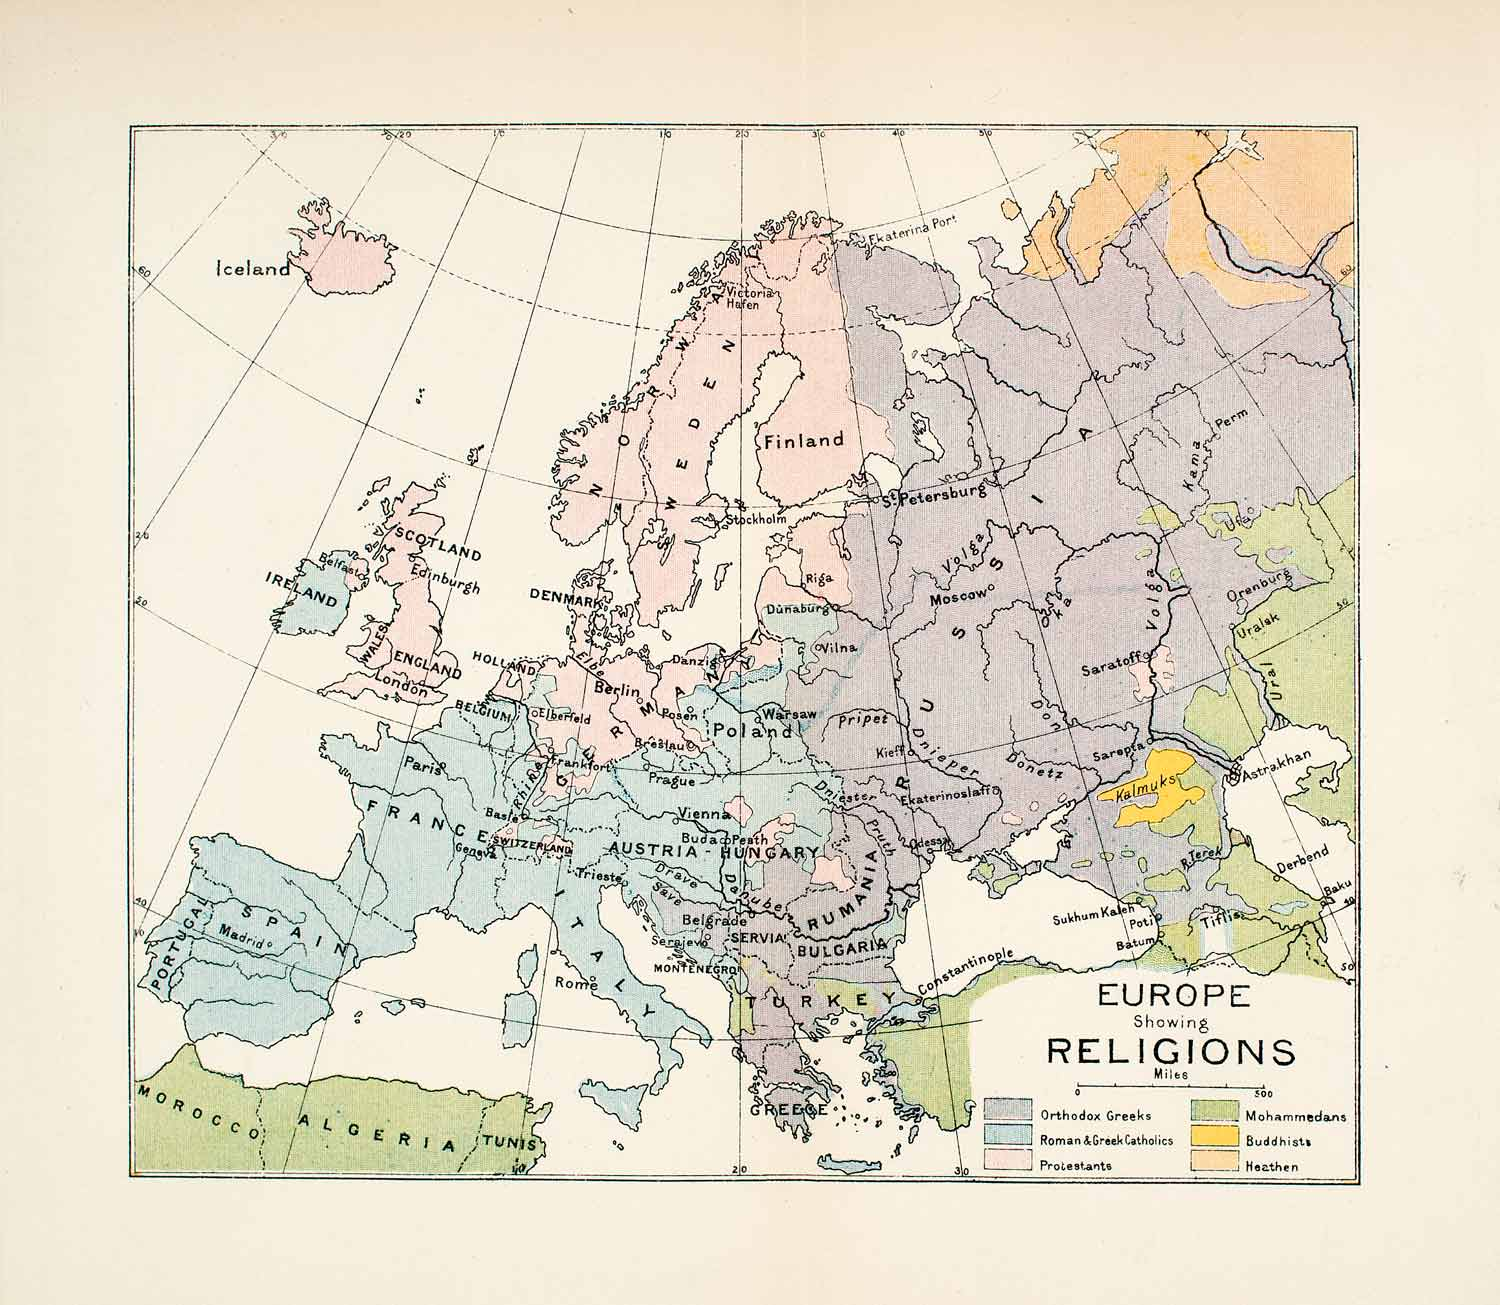 Map Of France Italy And Spain.1904 Lithograph Map Europe Religion Spain England France Italy Russia Xgwa6